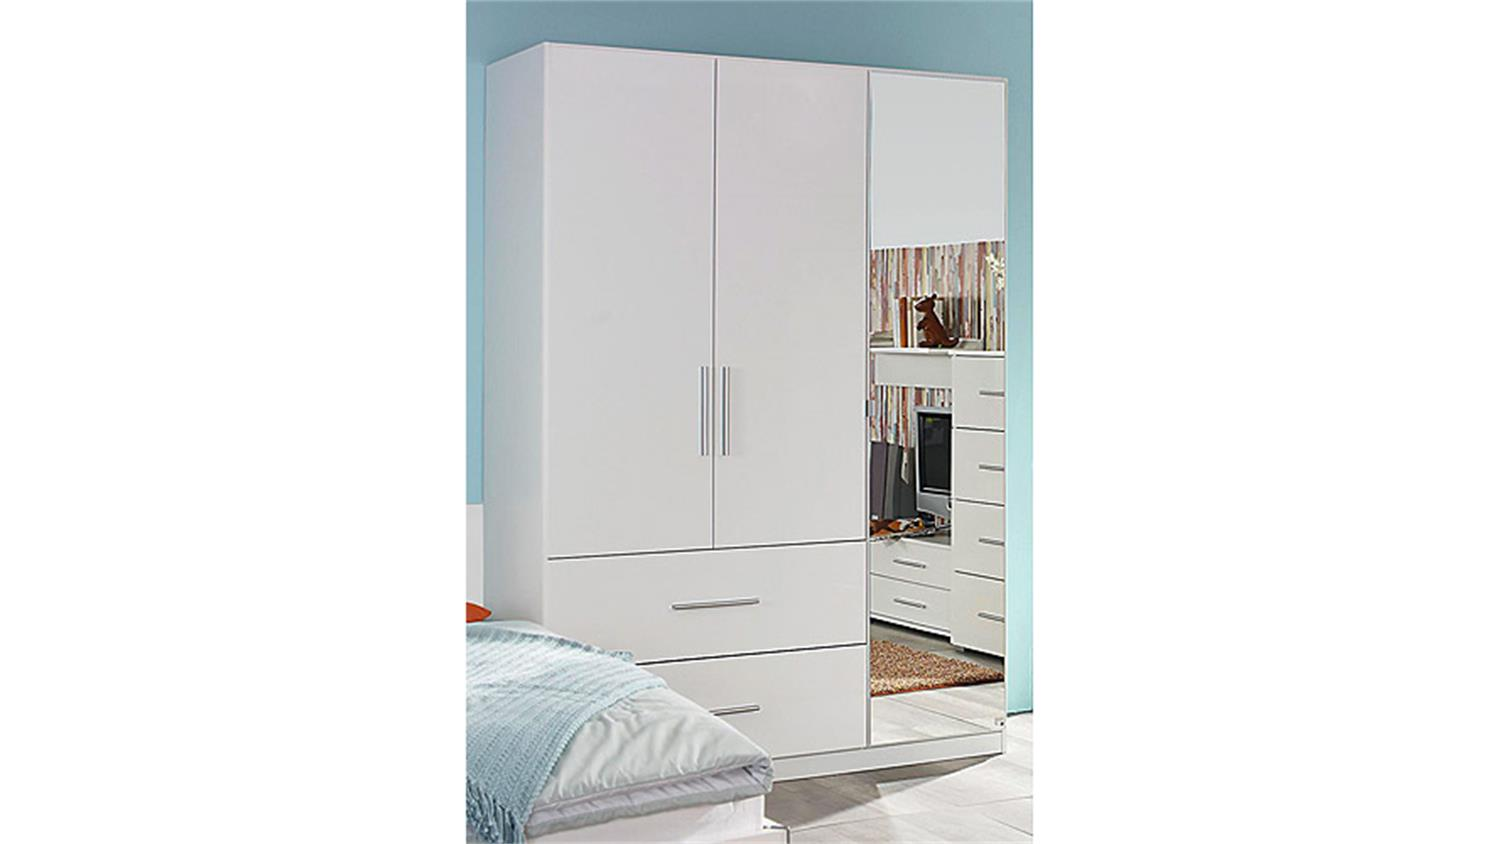 kleiderschrank manja wei hochglanz 3 t ren b 136 cm. Black Bedroom Furniture Sets. Home Design Ideas